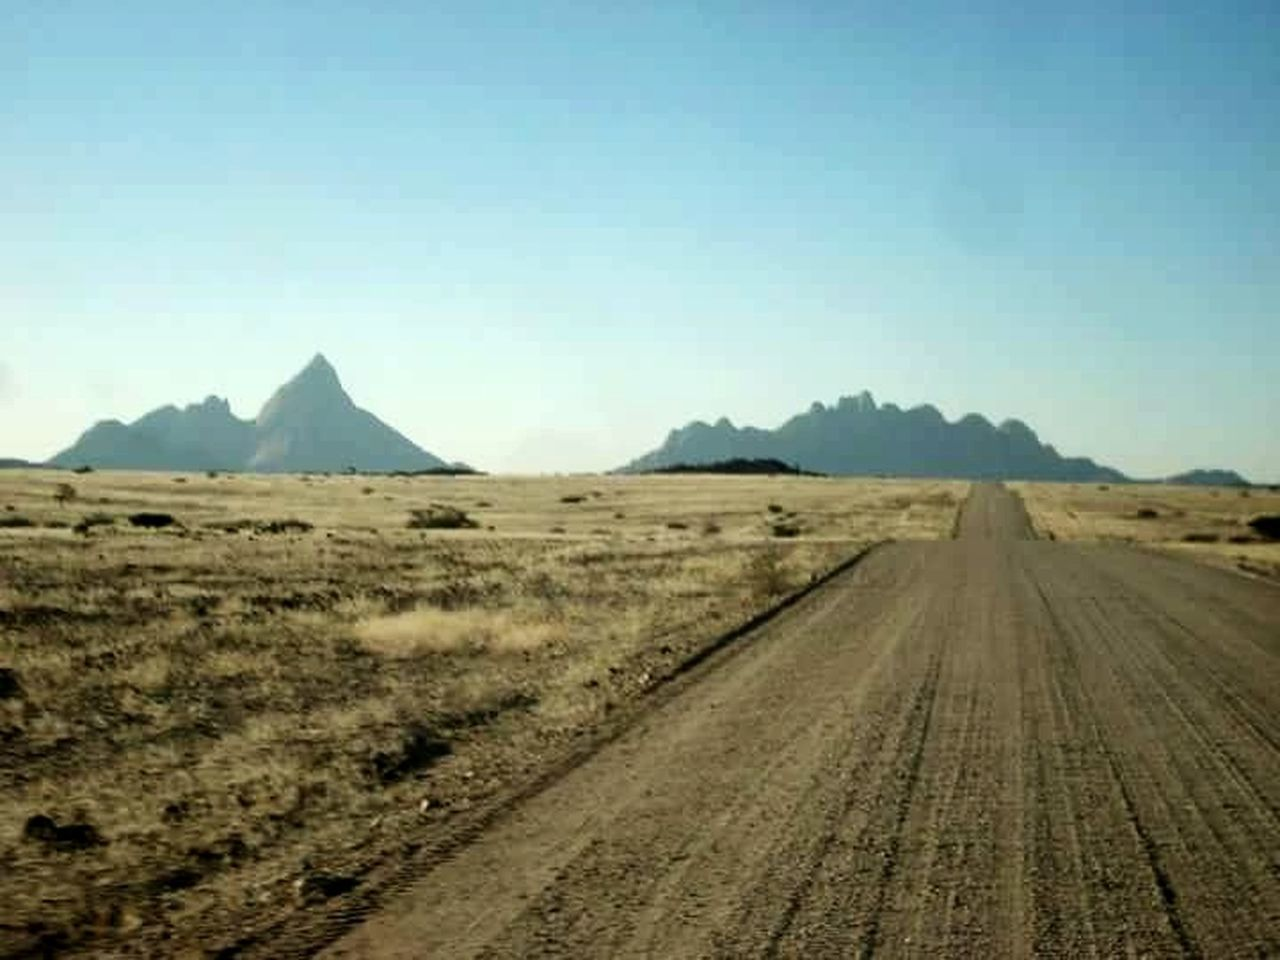 Landscape Desert Outdoors Adventure Clear Sky Rural Scene Mountain Road Beauty In Nature No People EyeEmNewHere